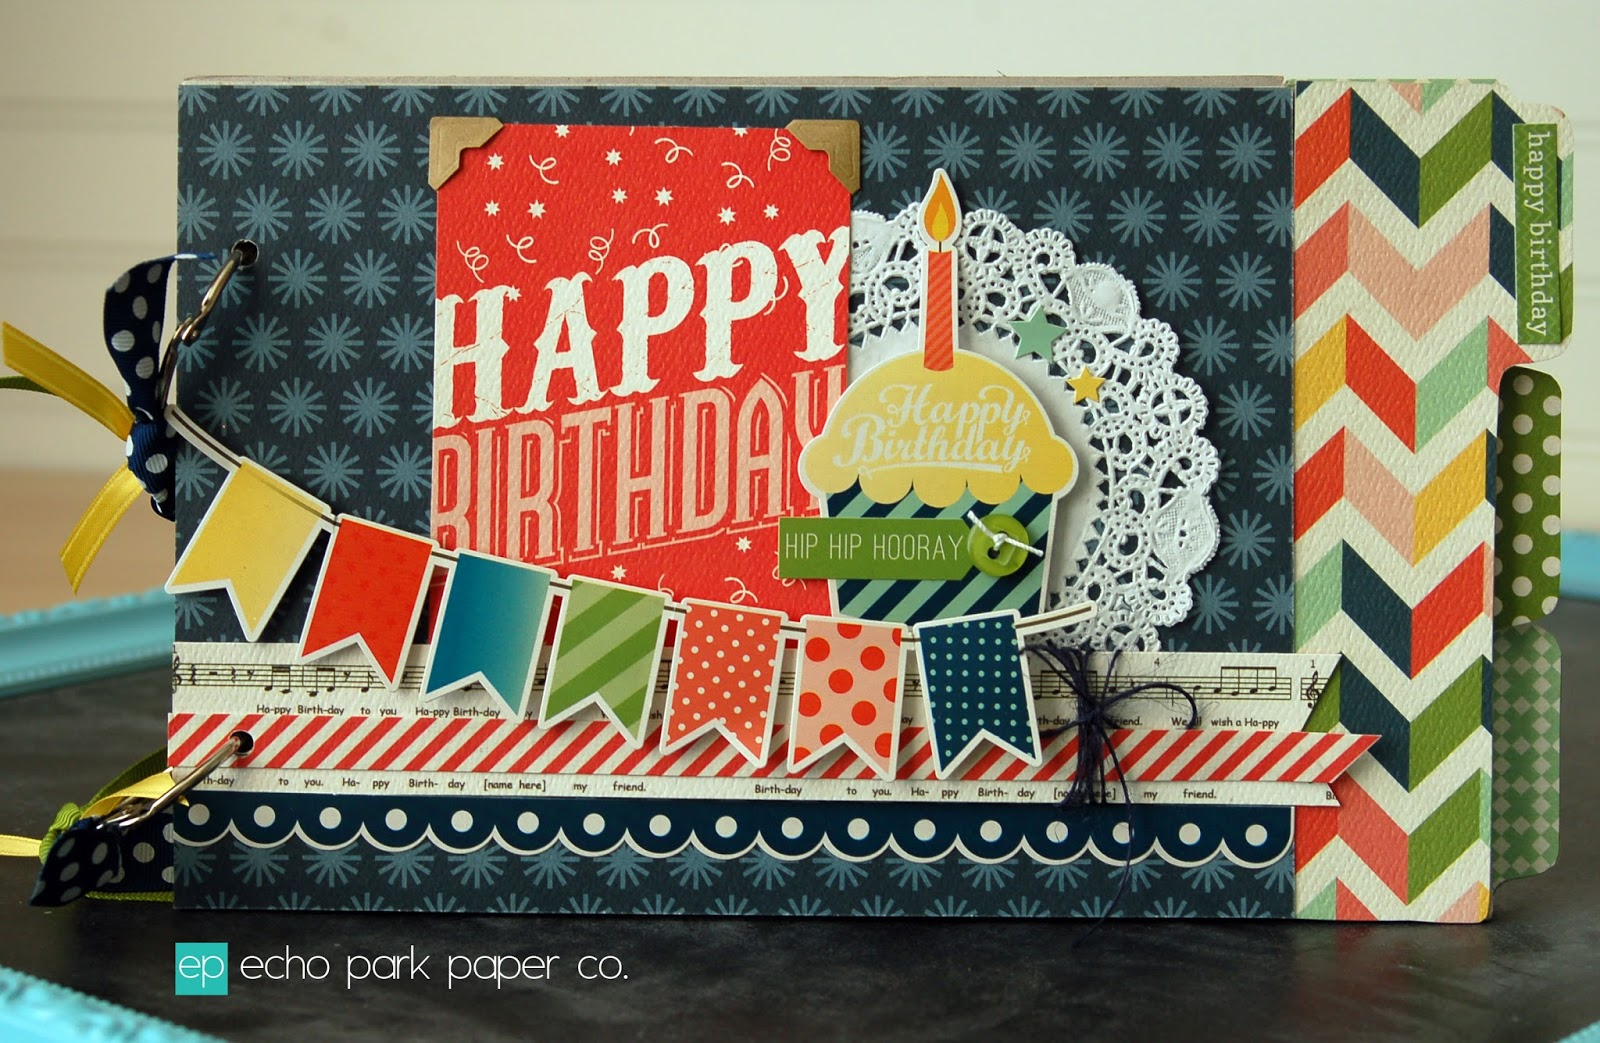 http://4.bp.blogspot.com/-Ge28A2zXXCM/UzgMEY30SdI/AAAAAAAAR3o/Yzf-uaZ6_5g/s1600/Happy-Birthday-Mini-Album-by-Echo-Park-Paper.jpg